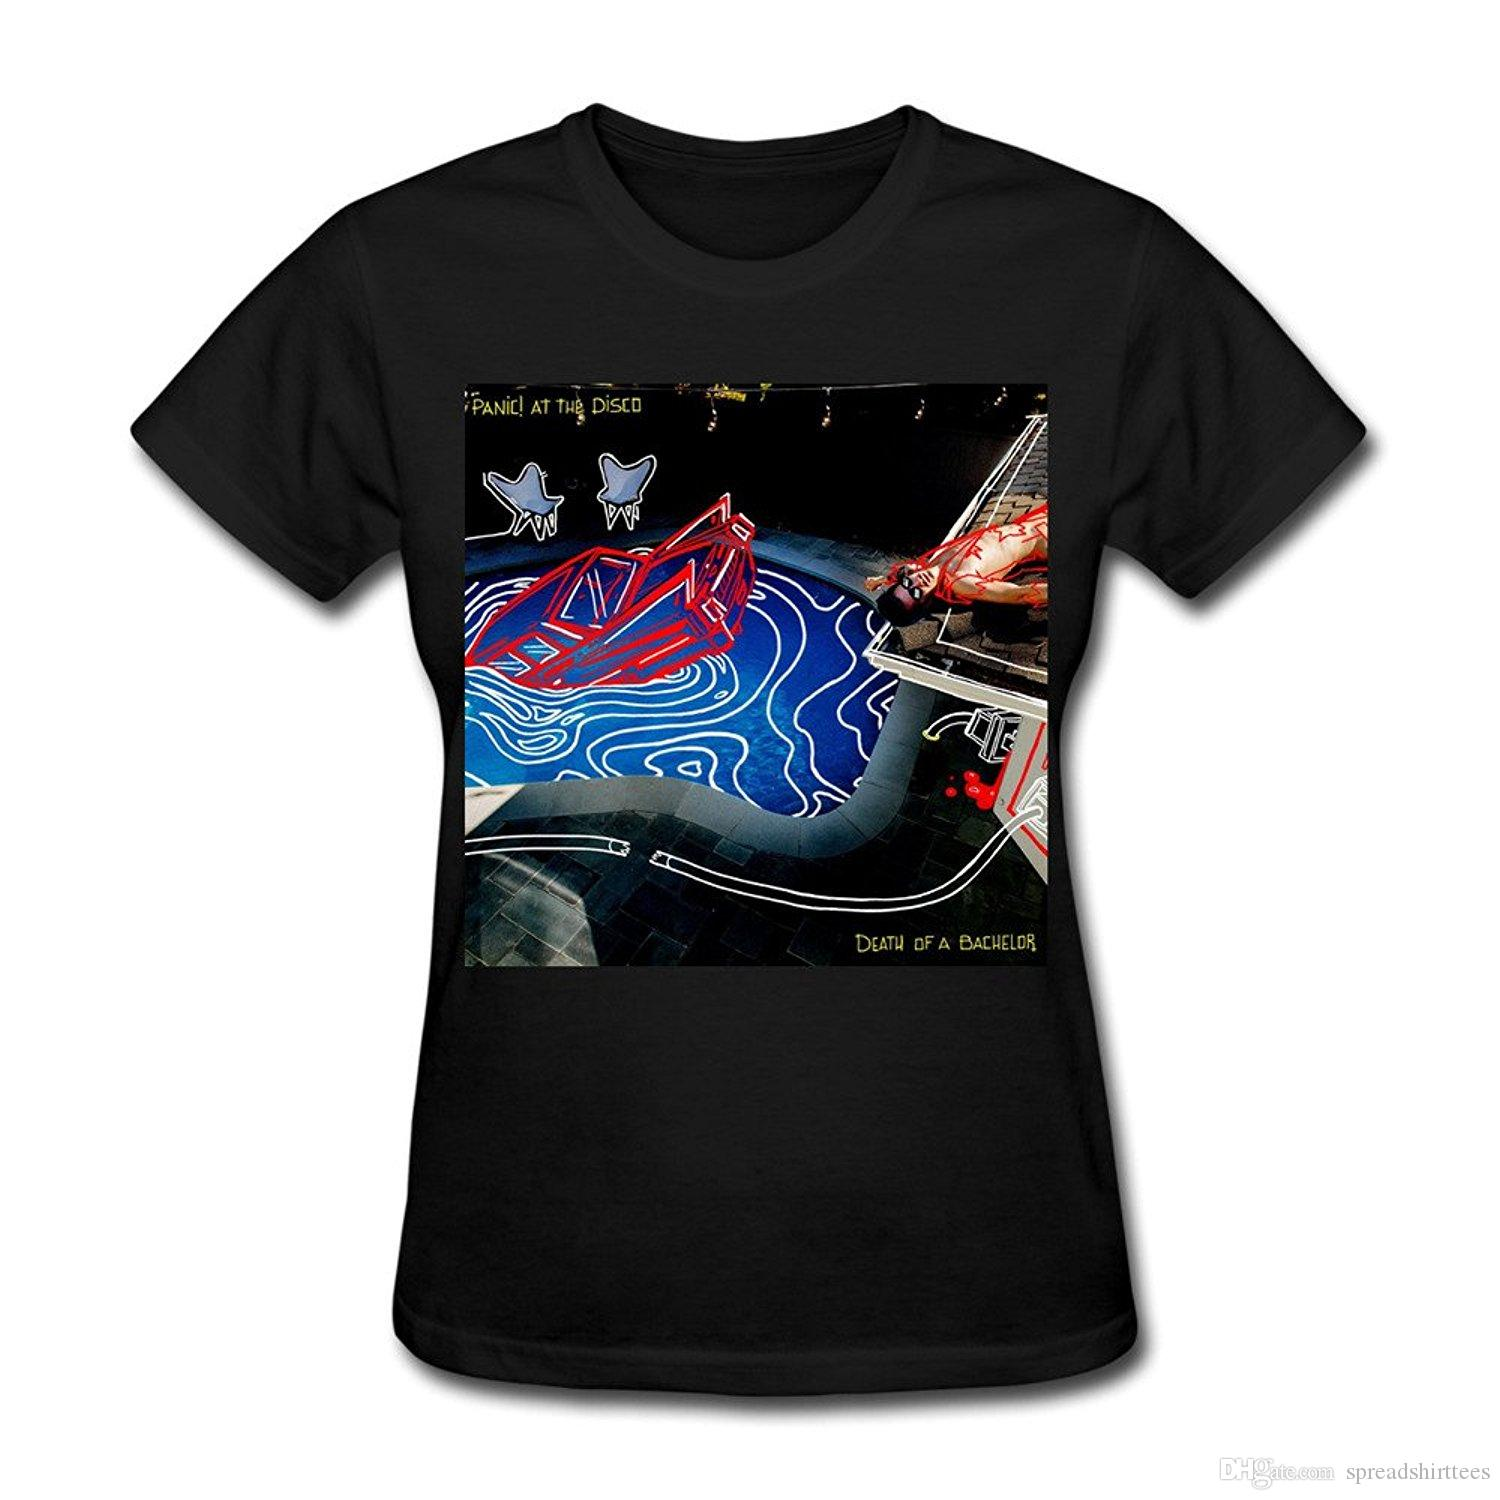 840d3cc8 Panic At The Disco T Shirt Australia